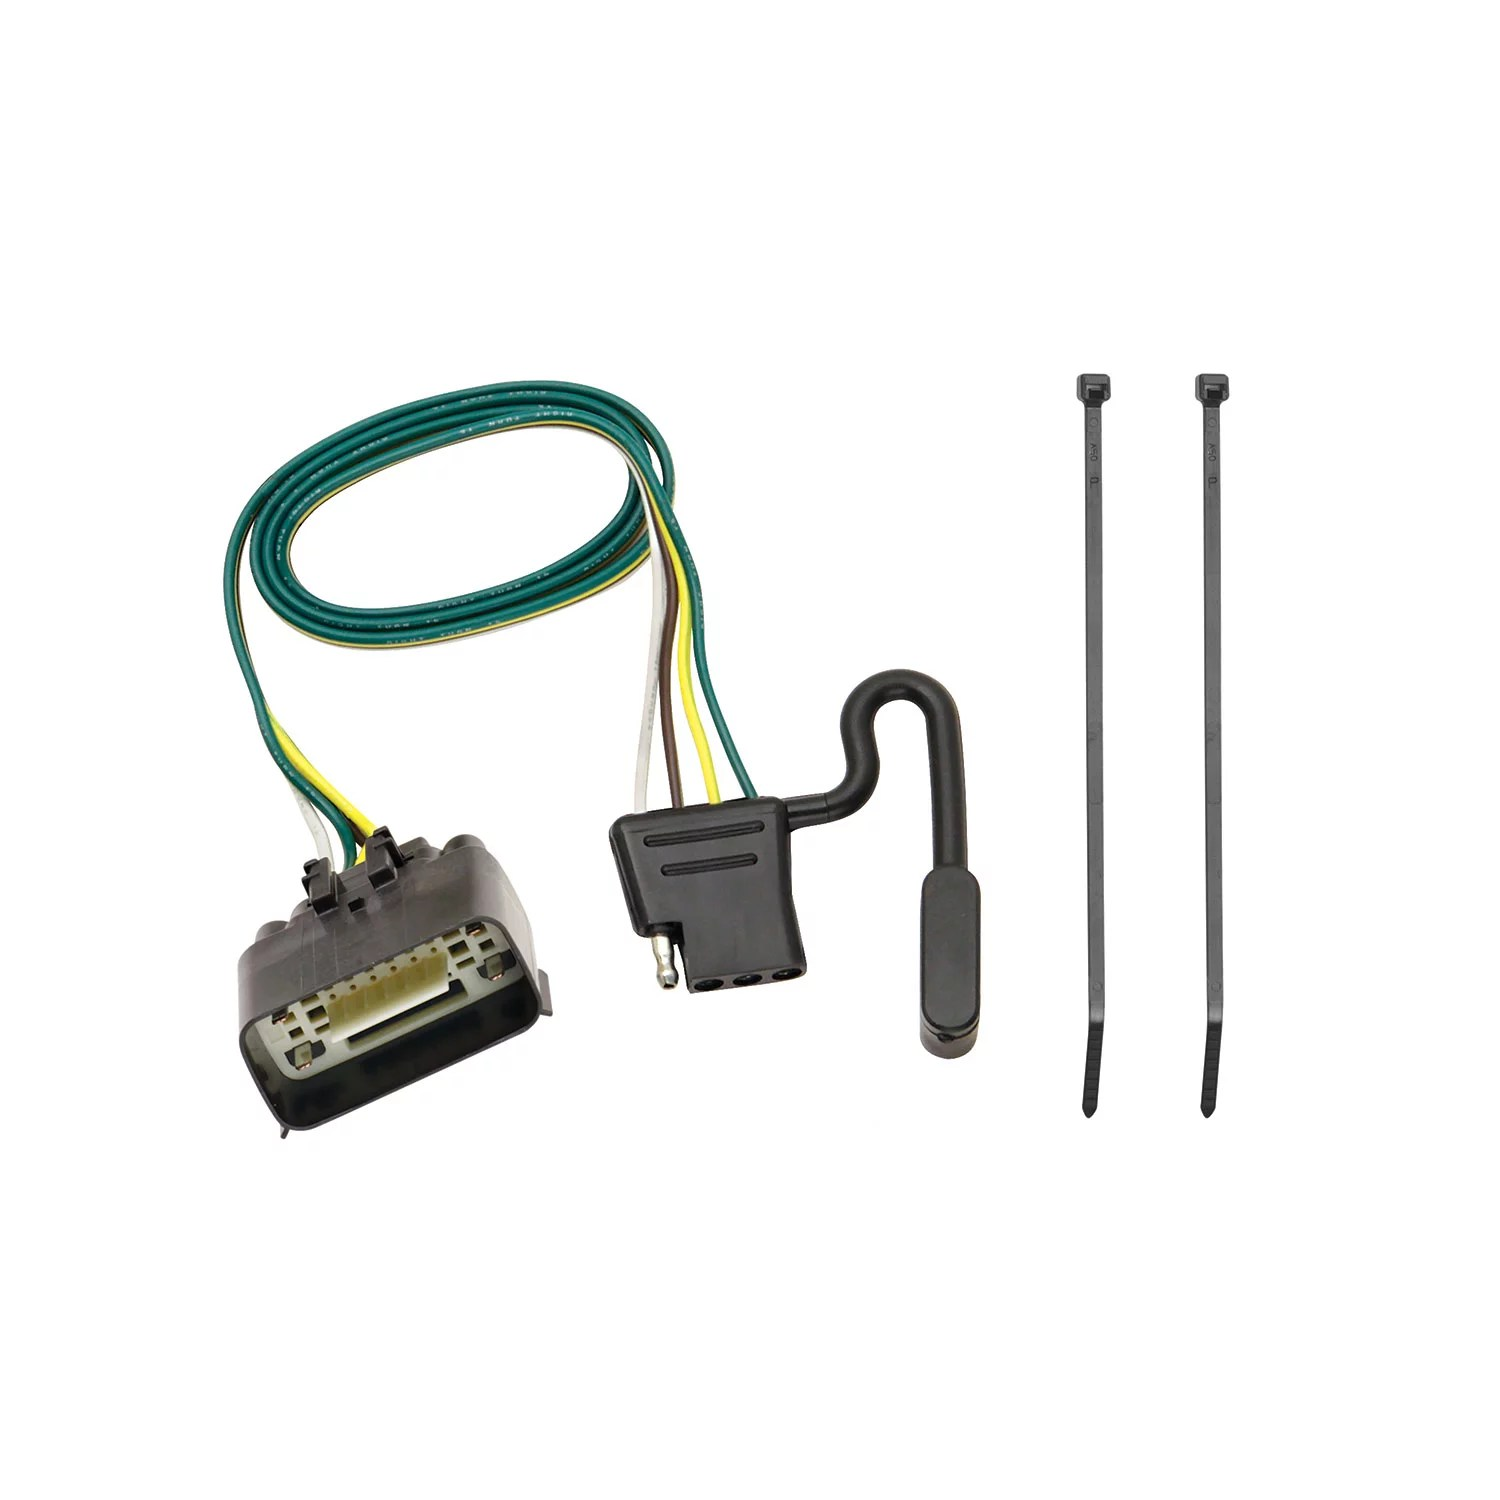 hight resolution of tekonsha 118260 trailer wiring connector 4 way flat replacement for oem tow package wiring harness